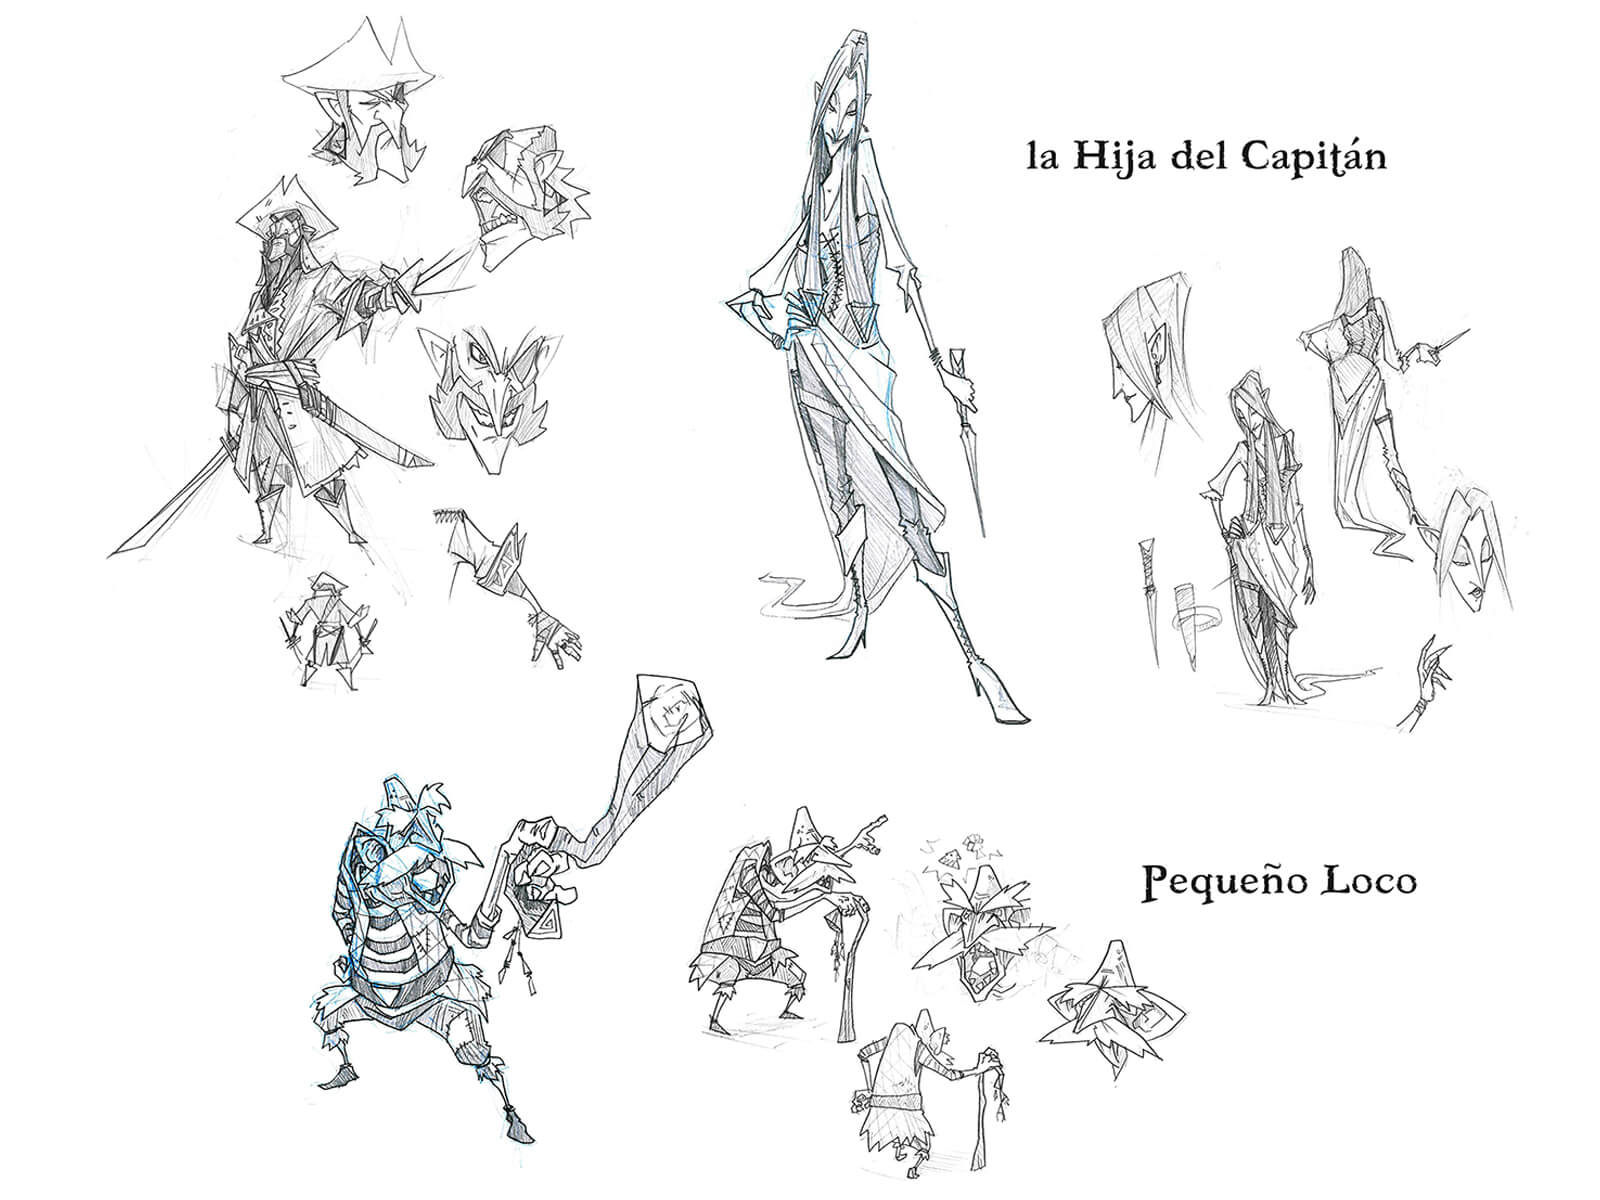 Black-and-white sketches of an angular pirate captain, his daughter, and an elderly man with a walking stick.